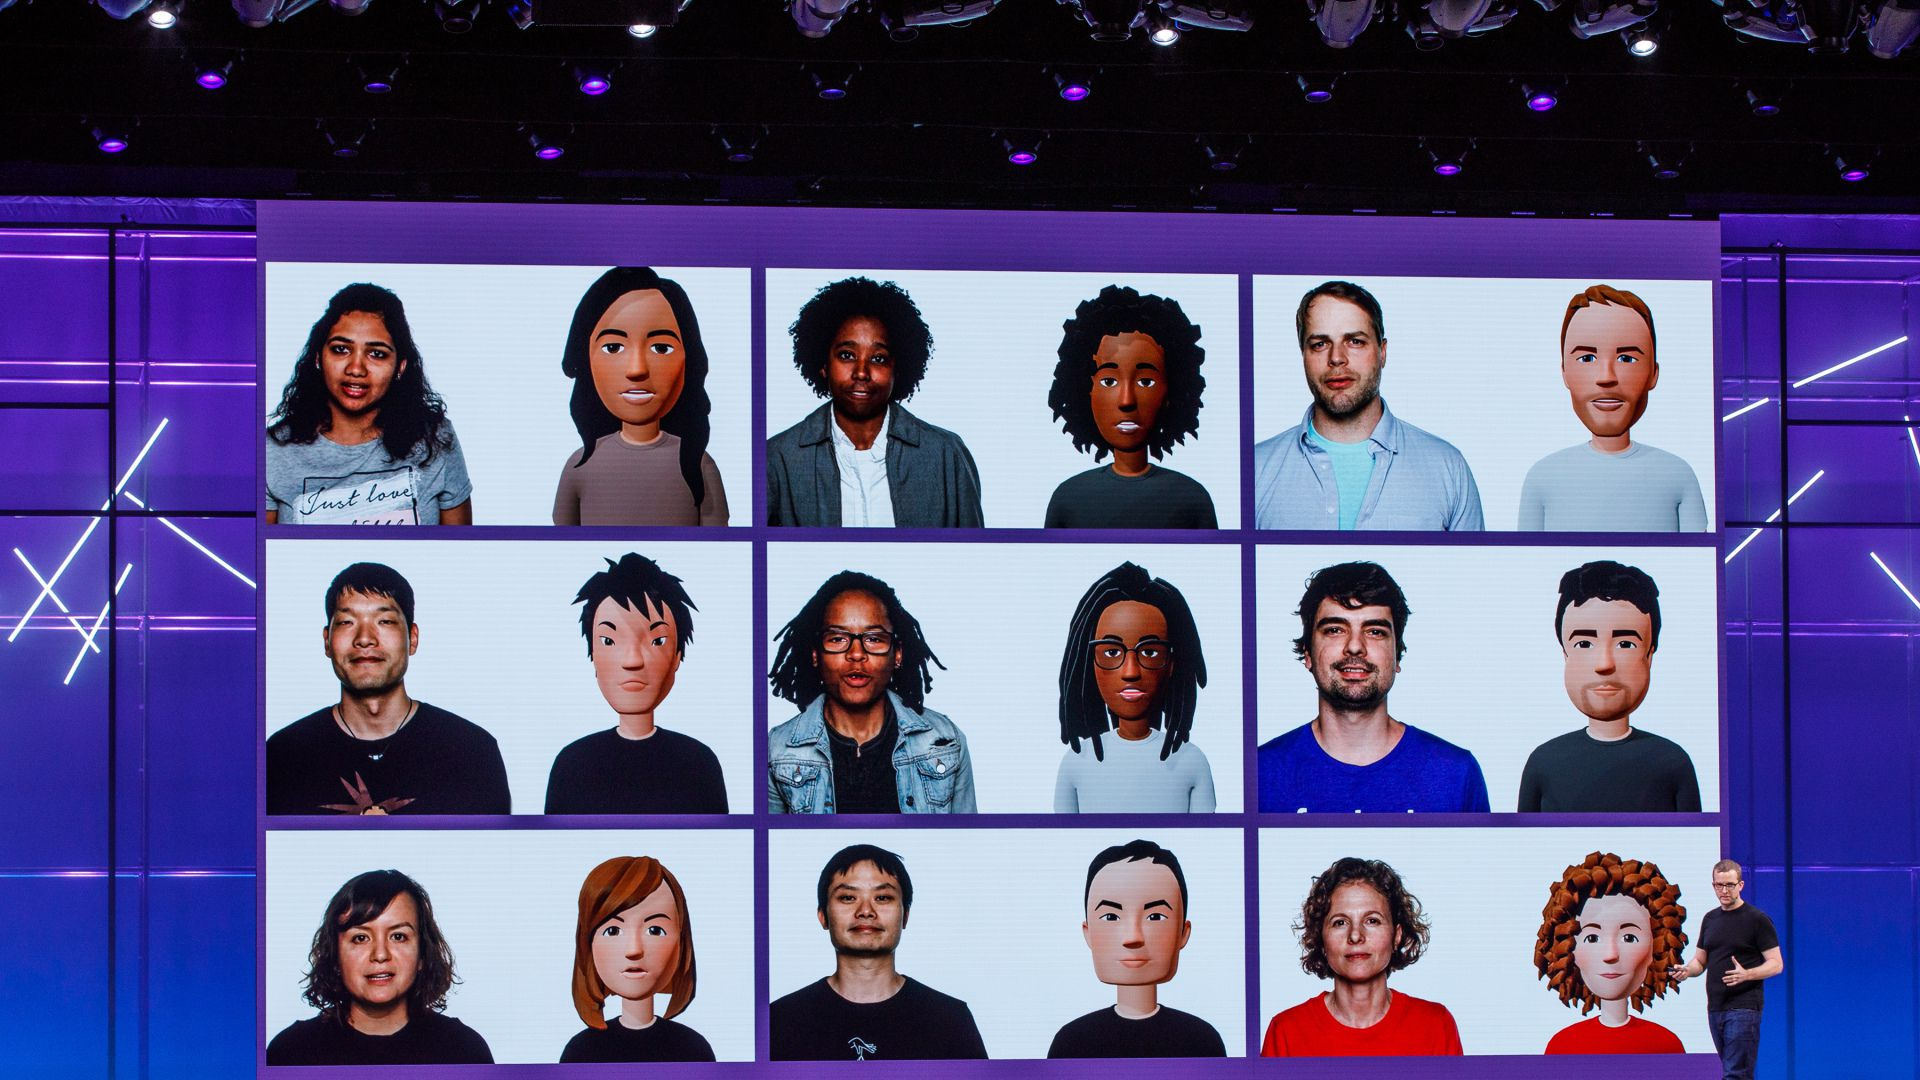 Facebook CTO Mike Schroepfer shows next-generation VR avatars created with the help of AI